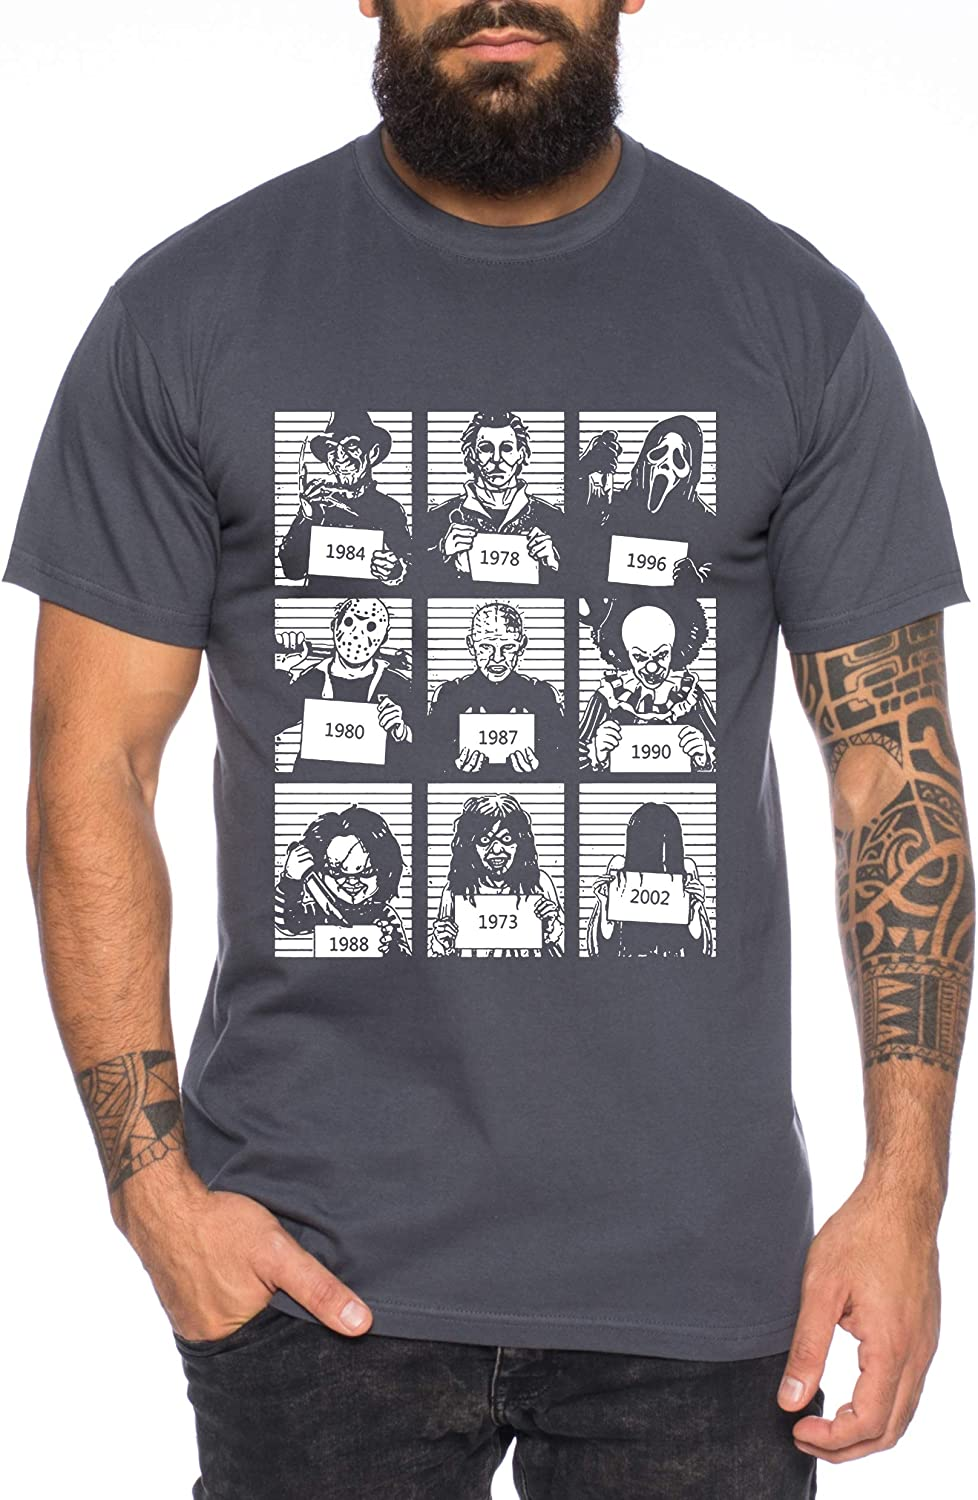 Prison T-Shirt pour Homme Halloween Michael Horror Myers Pennywise Man 13 Jason Voorhees Nightmare